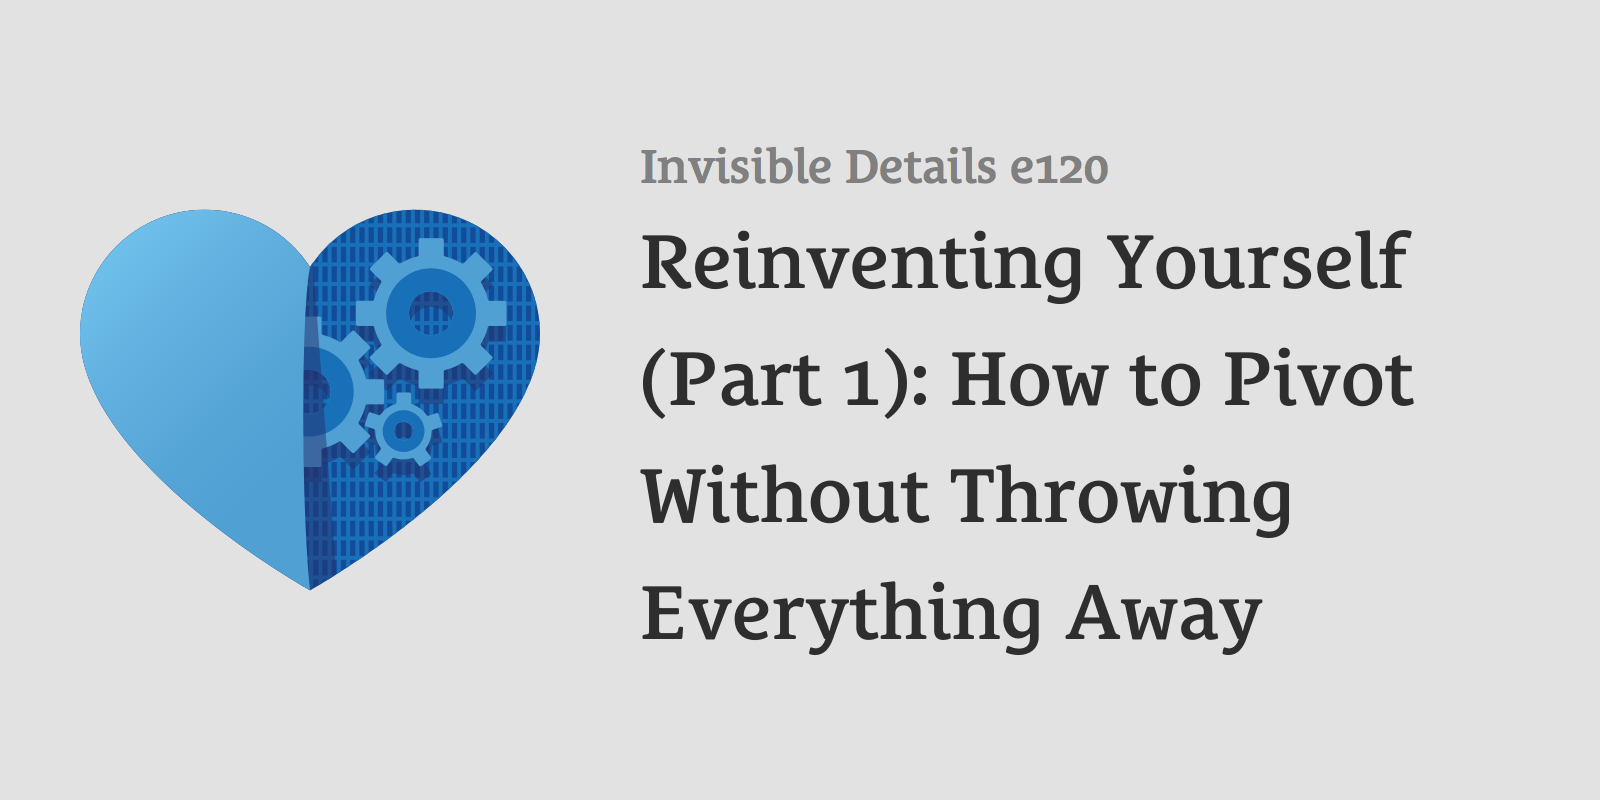 Reinventing Yourself (Part 1): How to Pivot Without Throwing Everything Away